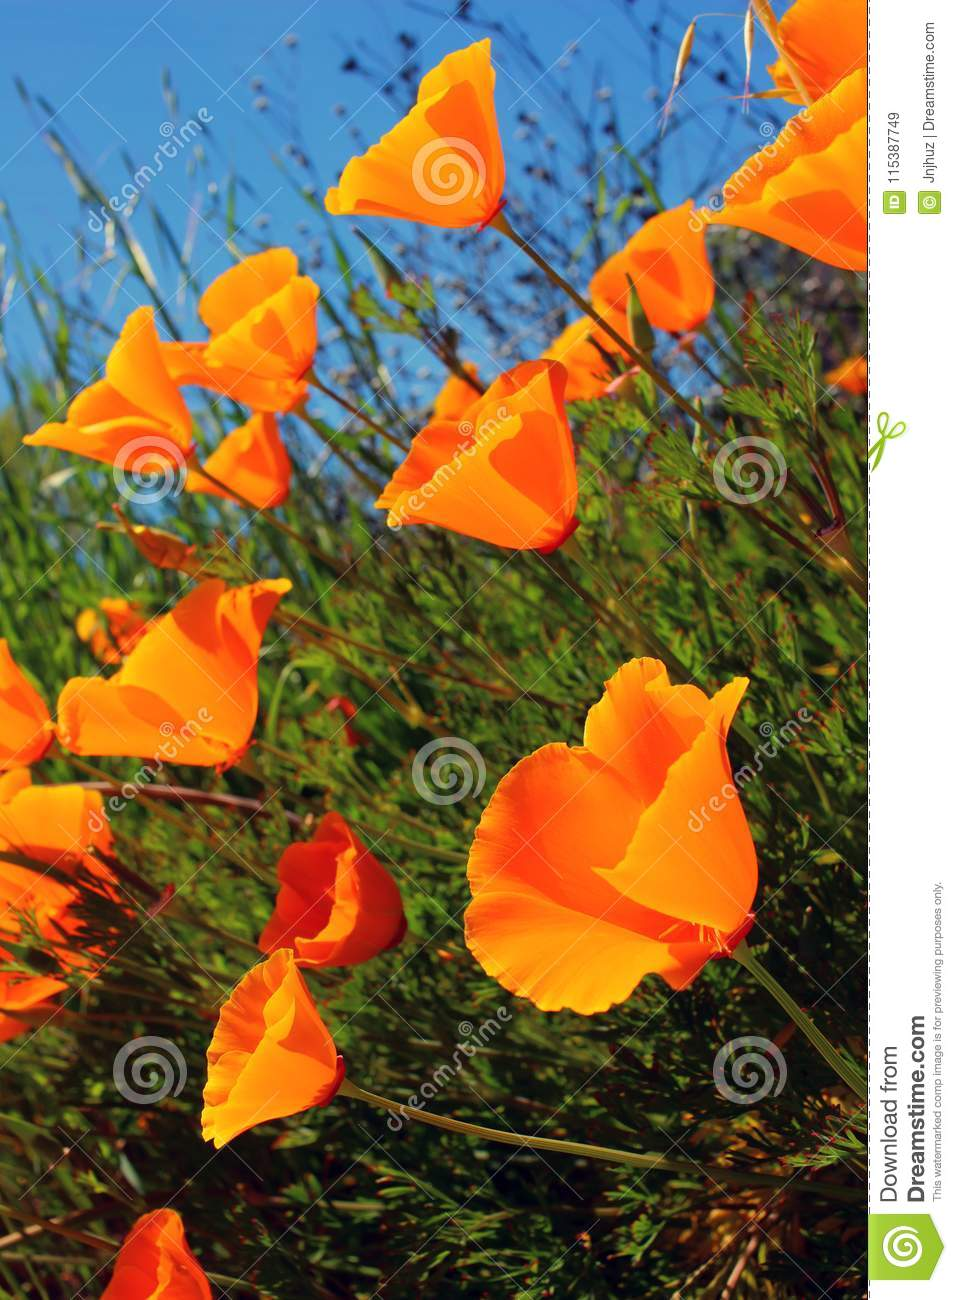 California Poppy Flowers Growing Wild Stock Image Image Of Ground